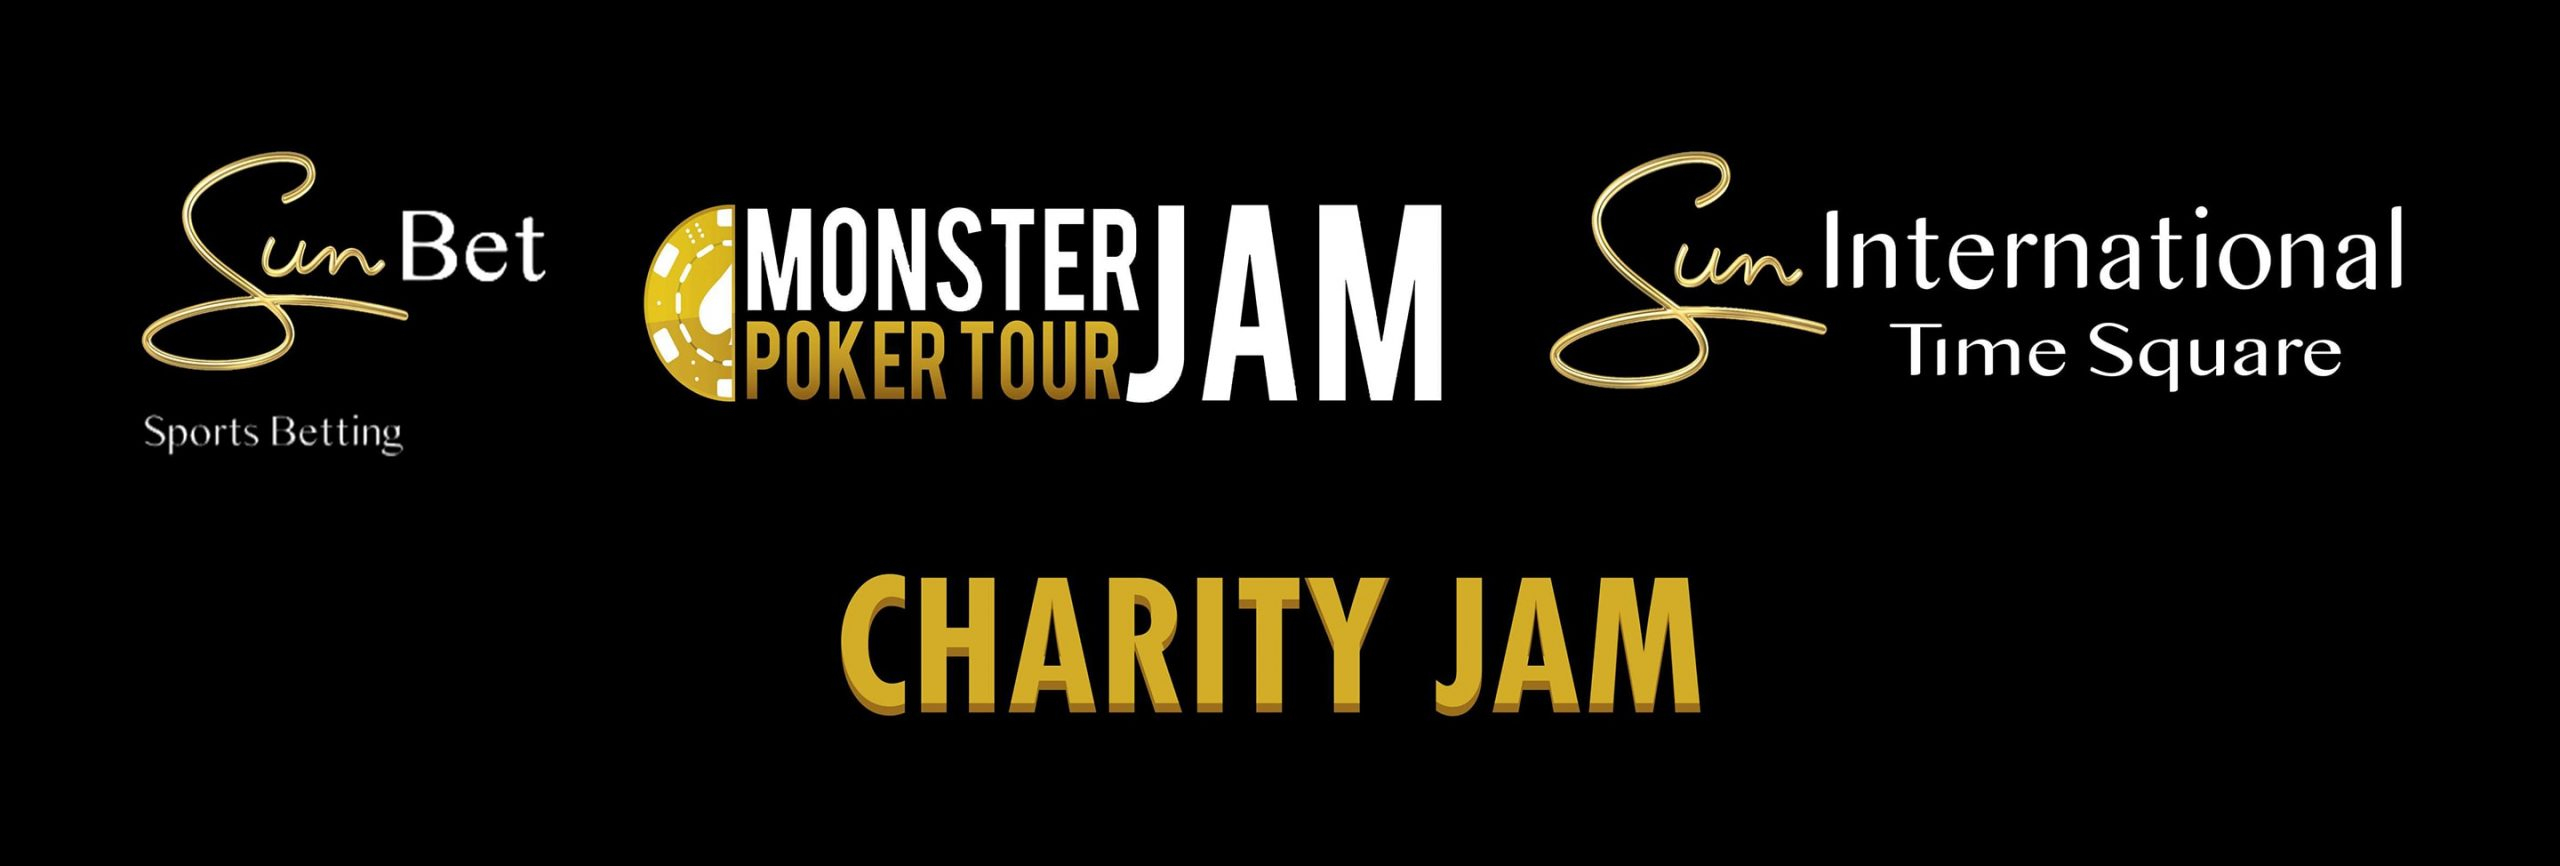 Monster Jam Charity Jam now underway